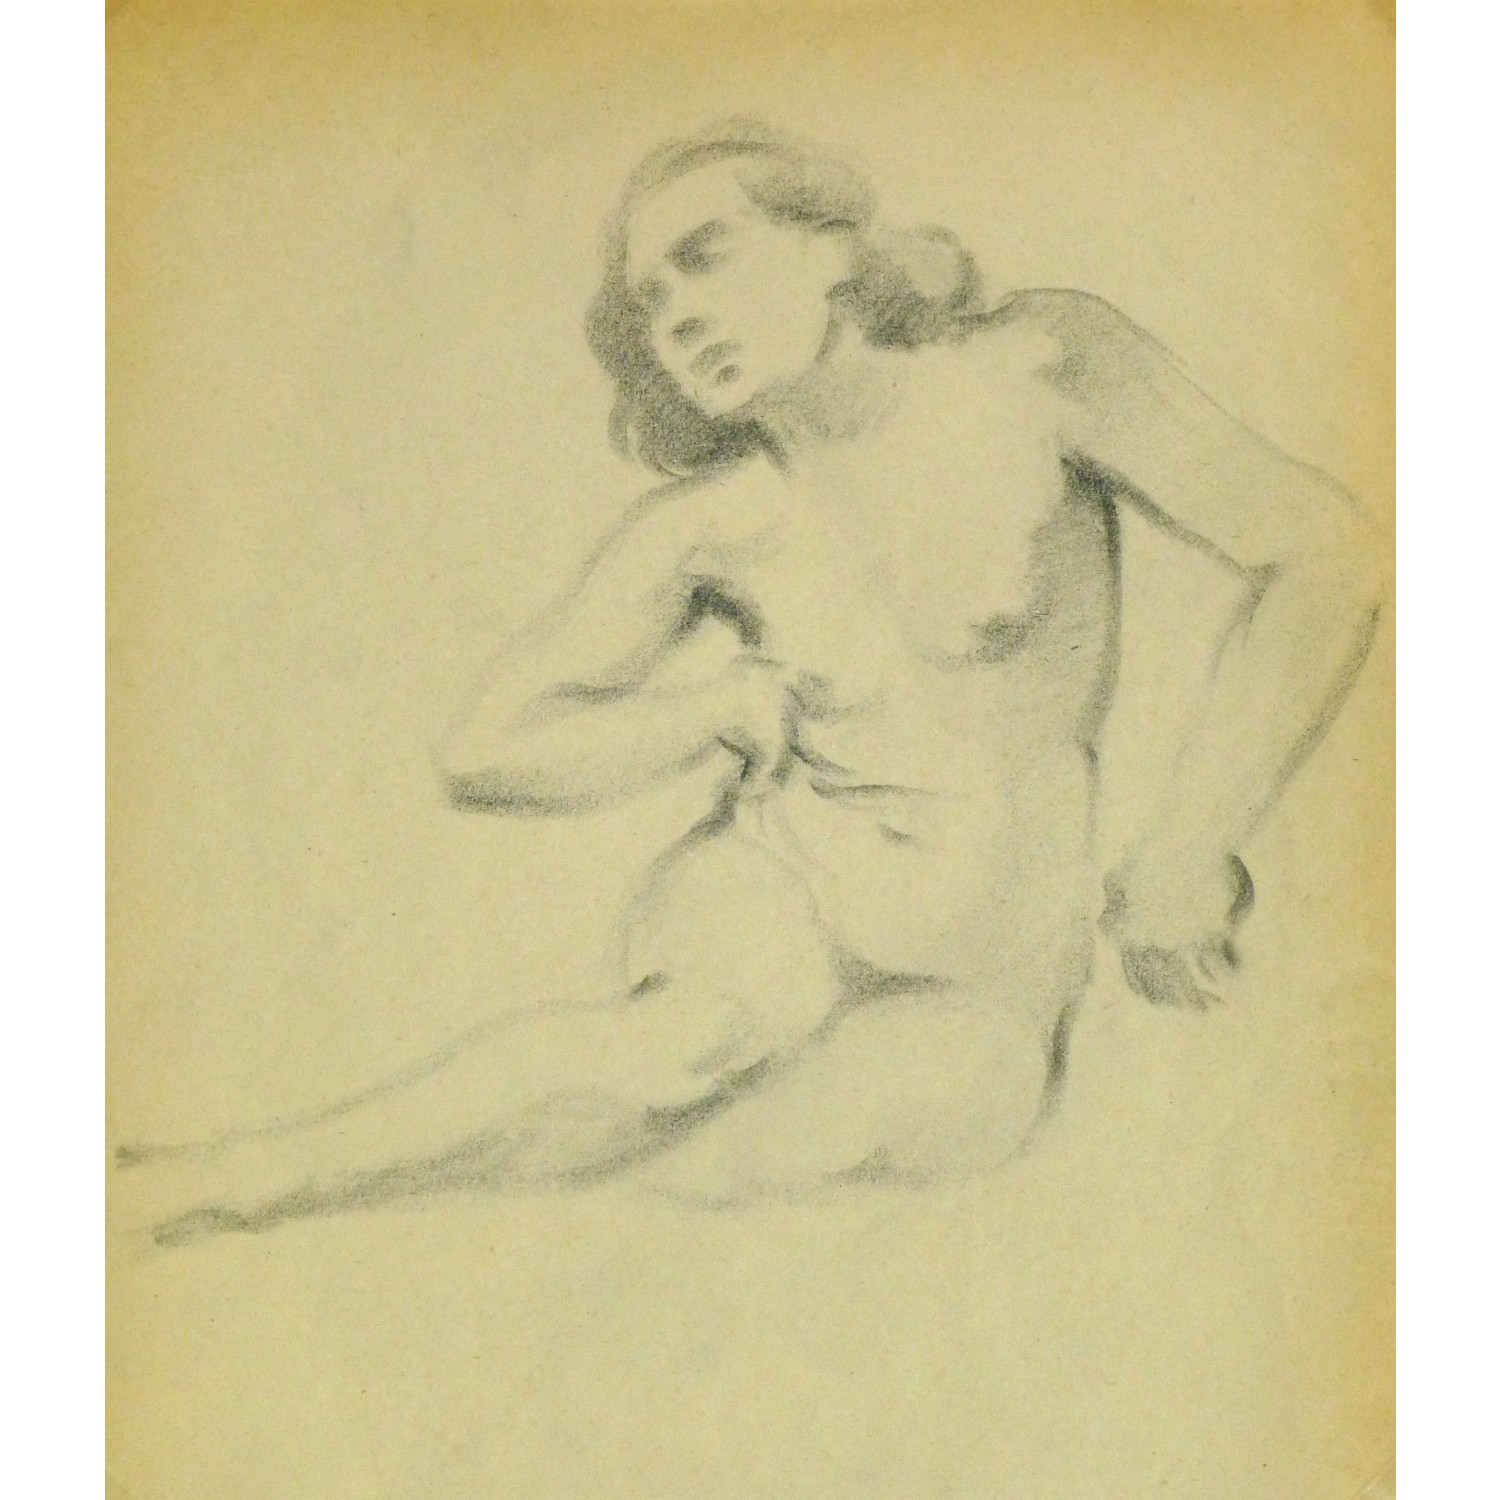 Vintage Pencil Drawing of Female Nude by Jean Ernst 9304